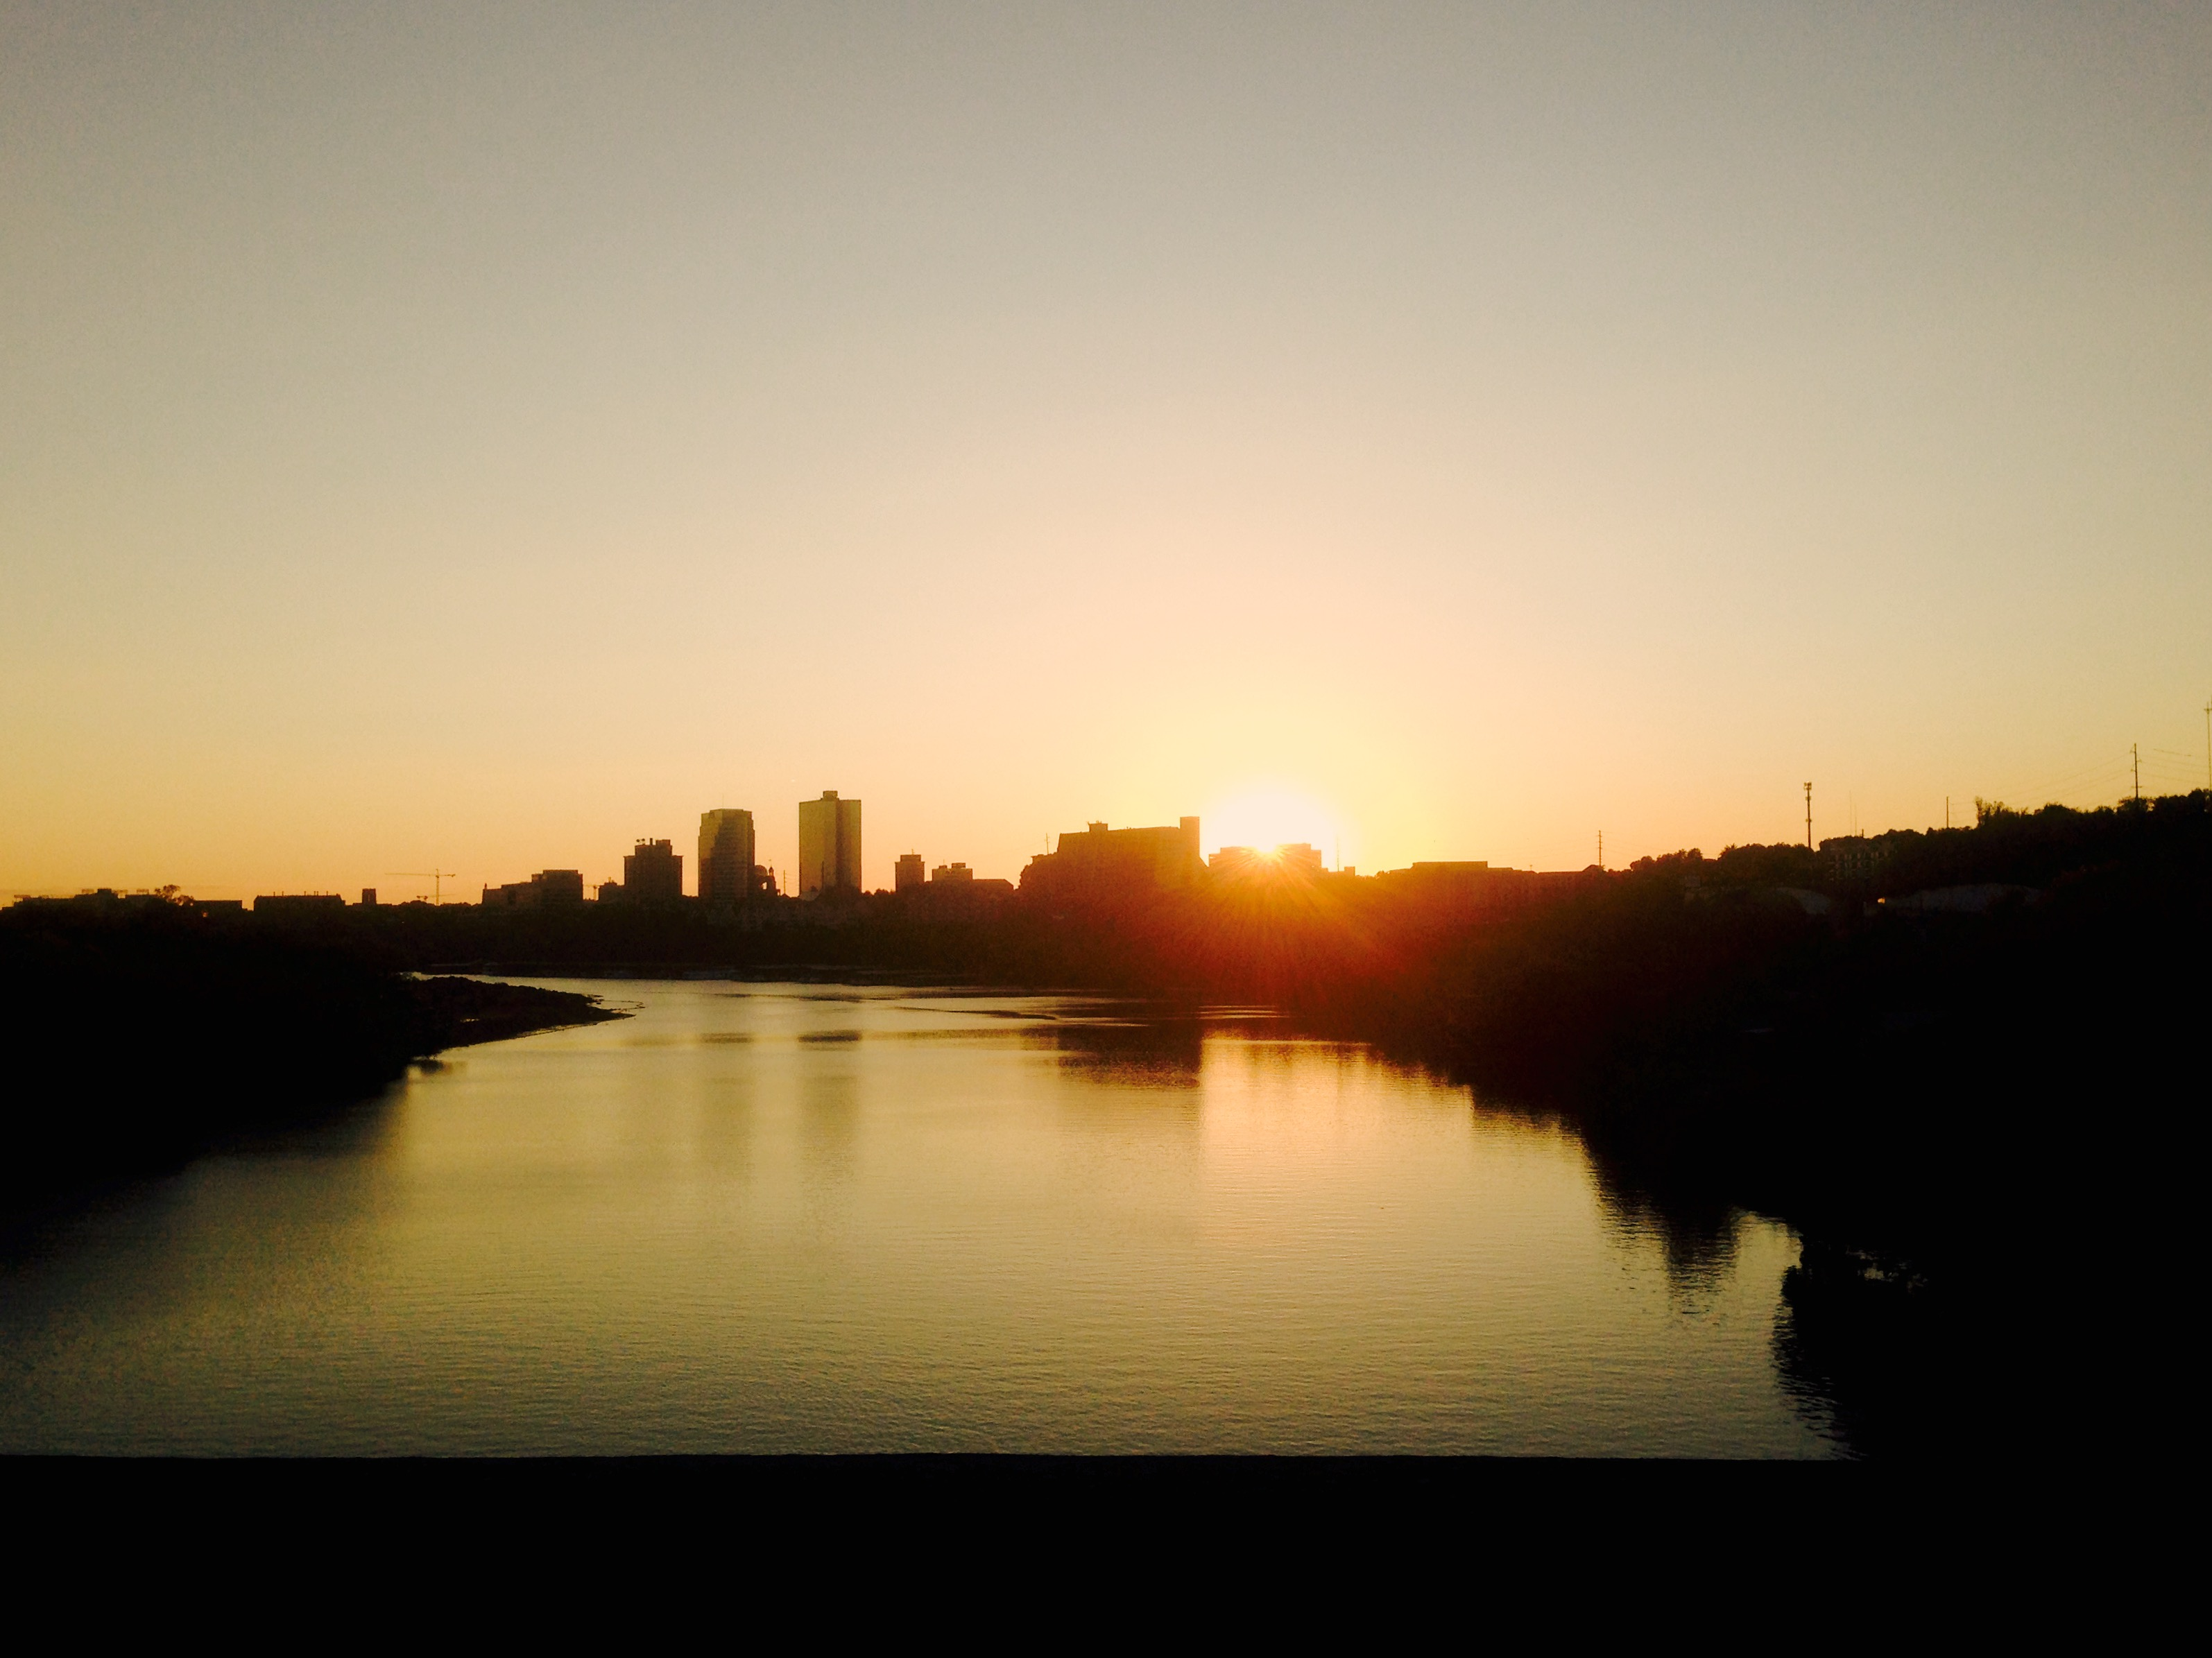 Knoxville, a great river town